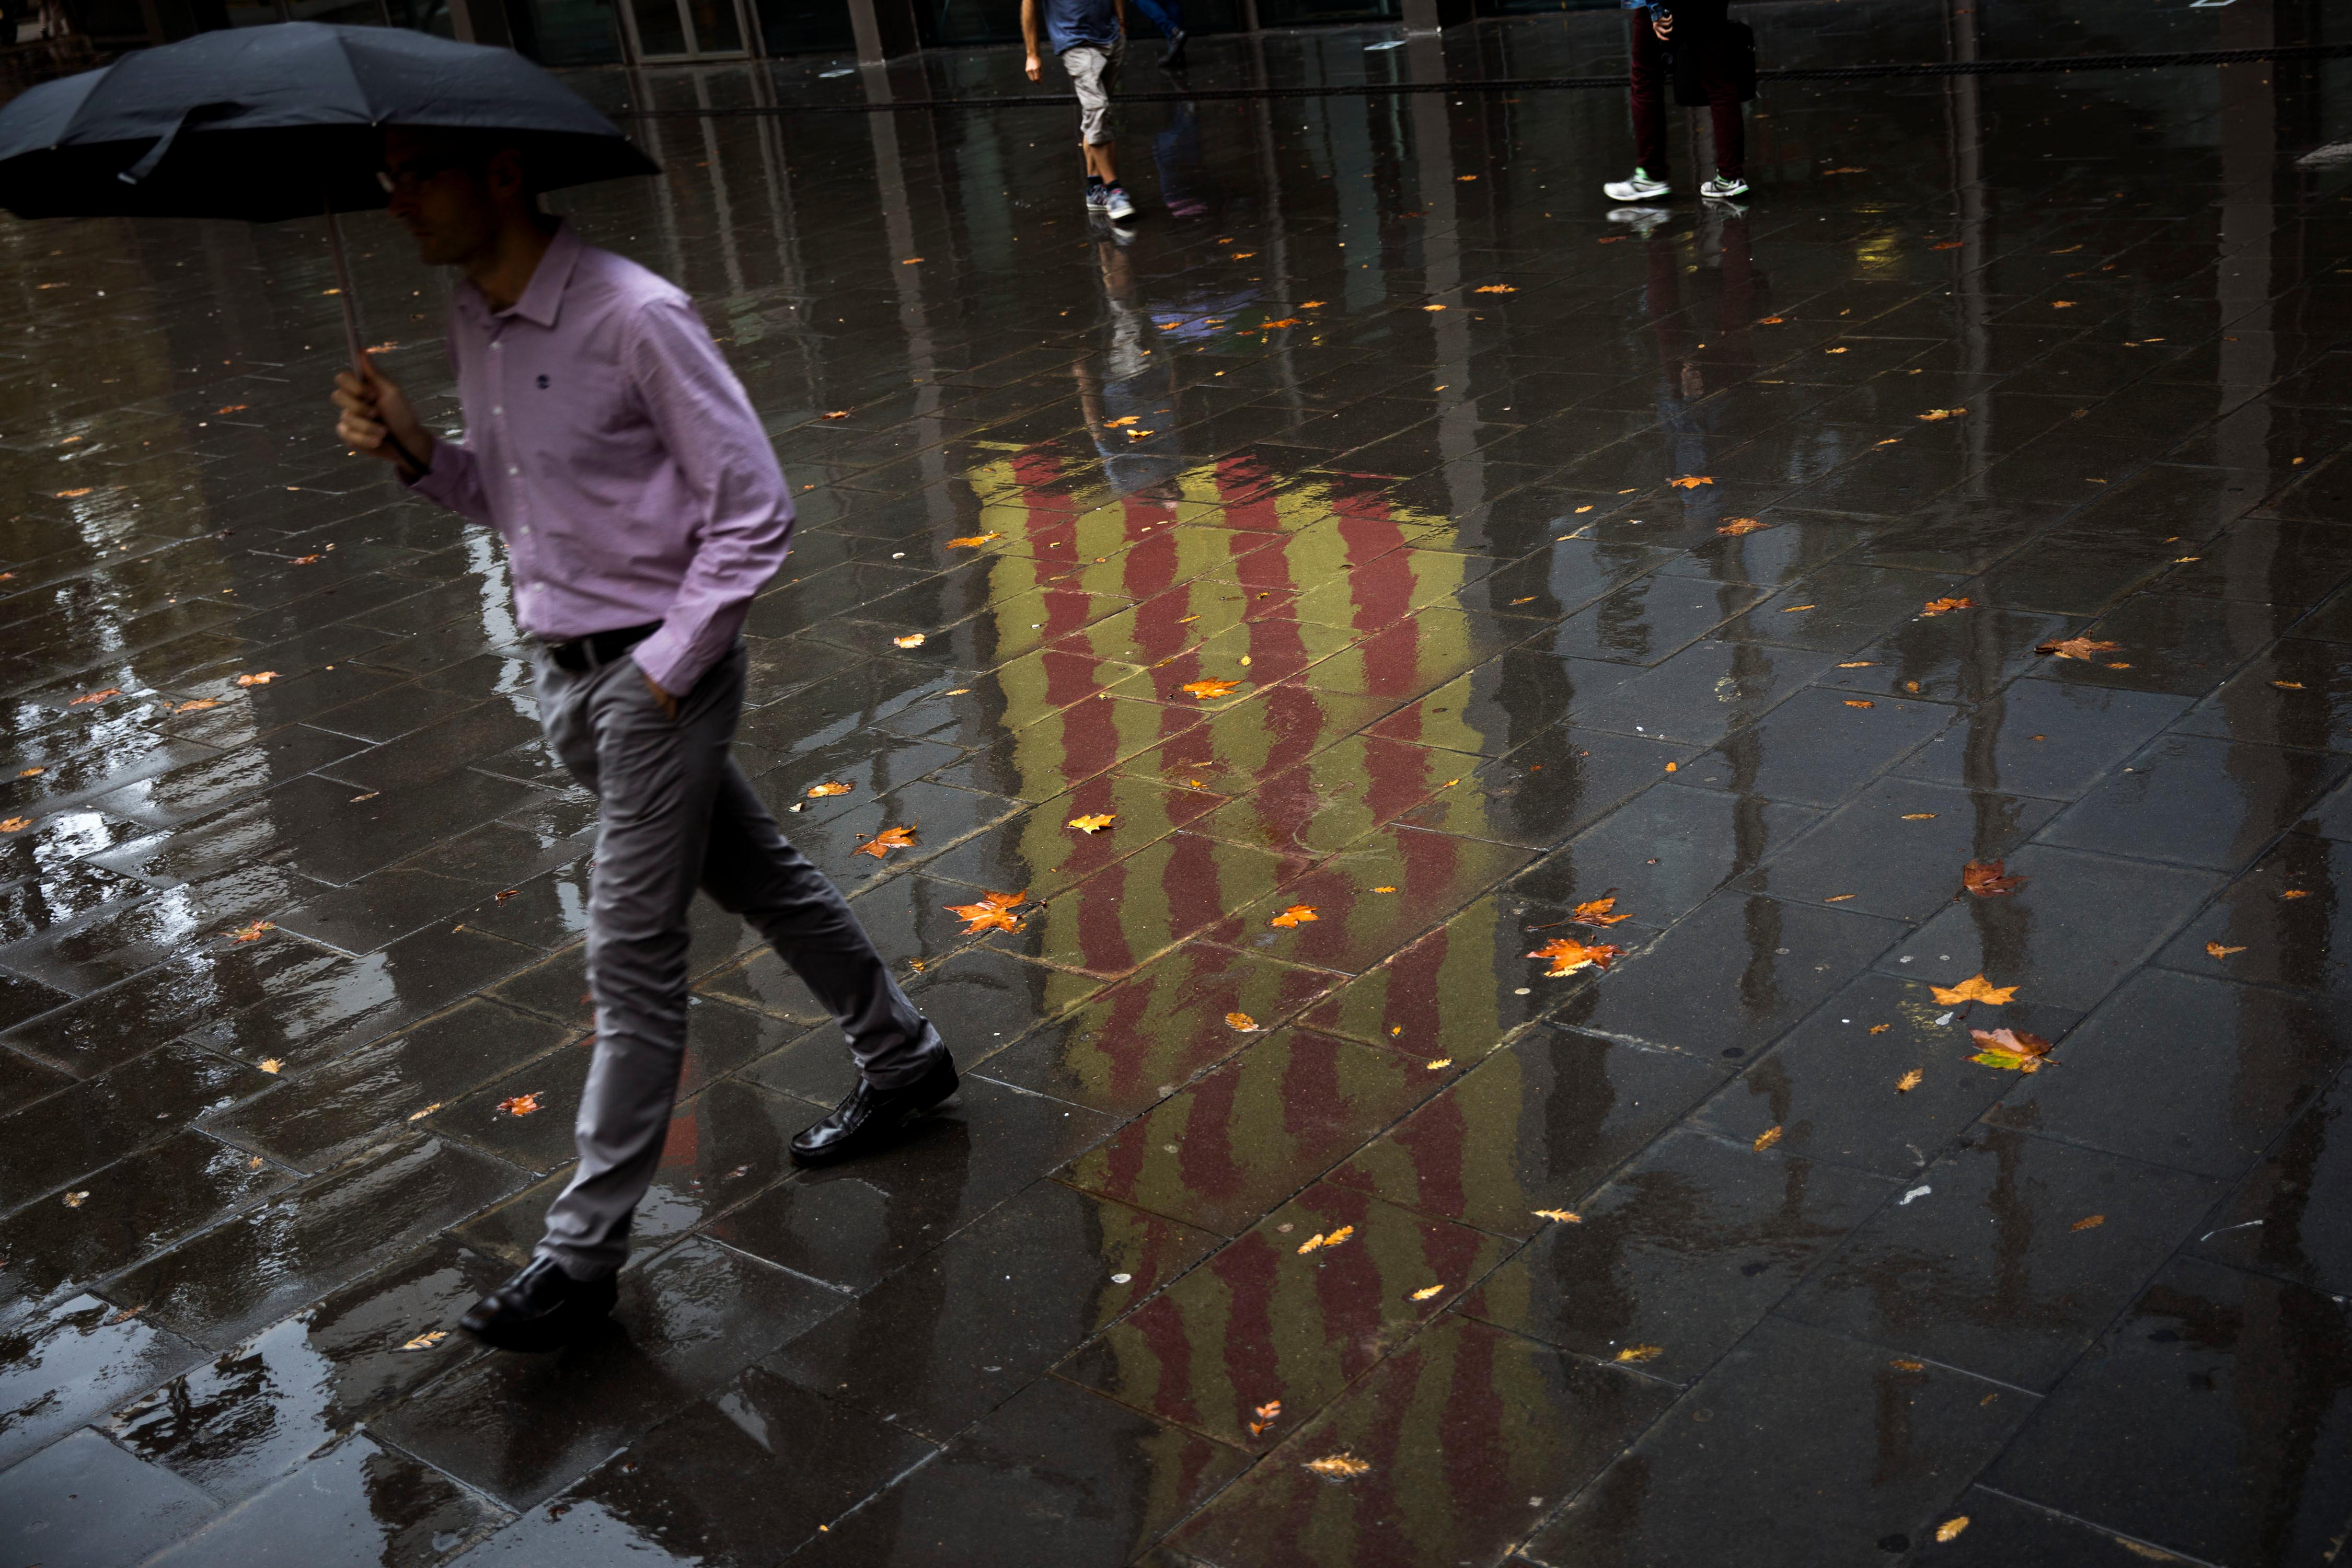 People walk past a Catalan flag reflected on the wet ground in Barcelona, Spain, Thursday, Oct. 19, 2017. Spain's government on Thursday immediately rejected a threat by Catalonia's leader to declare independence unless talks are held, calling a special Cabinet session for the weekend to activate measures to take control of the region's semi-autonomous powers. (AP Photo/Emilio Morenatti)